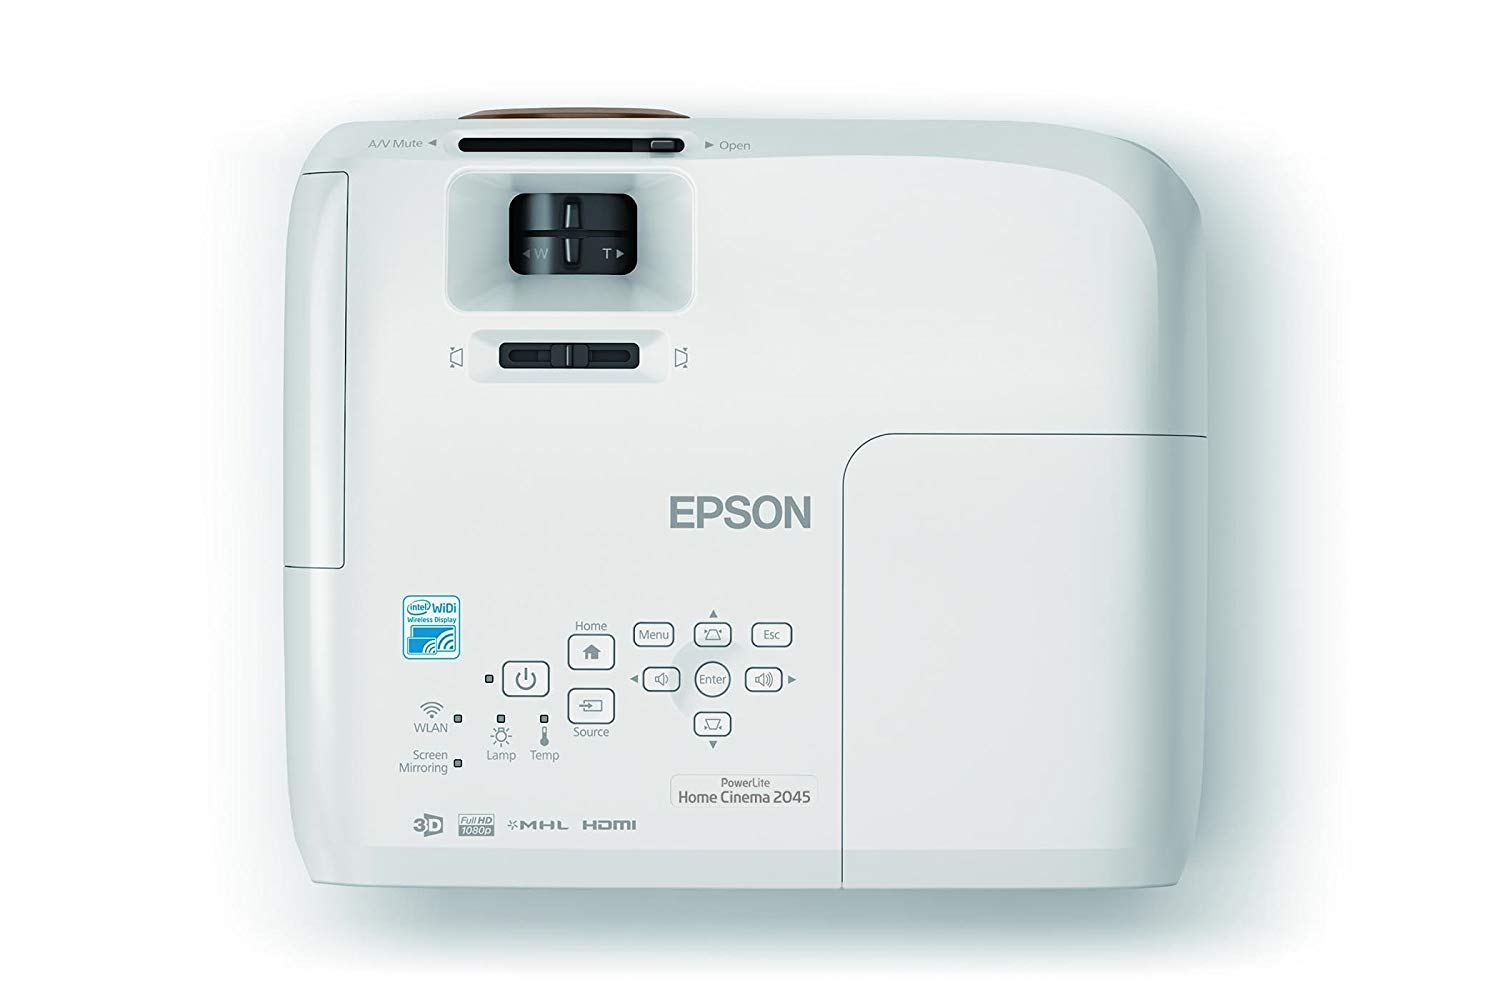 epson 2045 projector top view